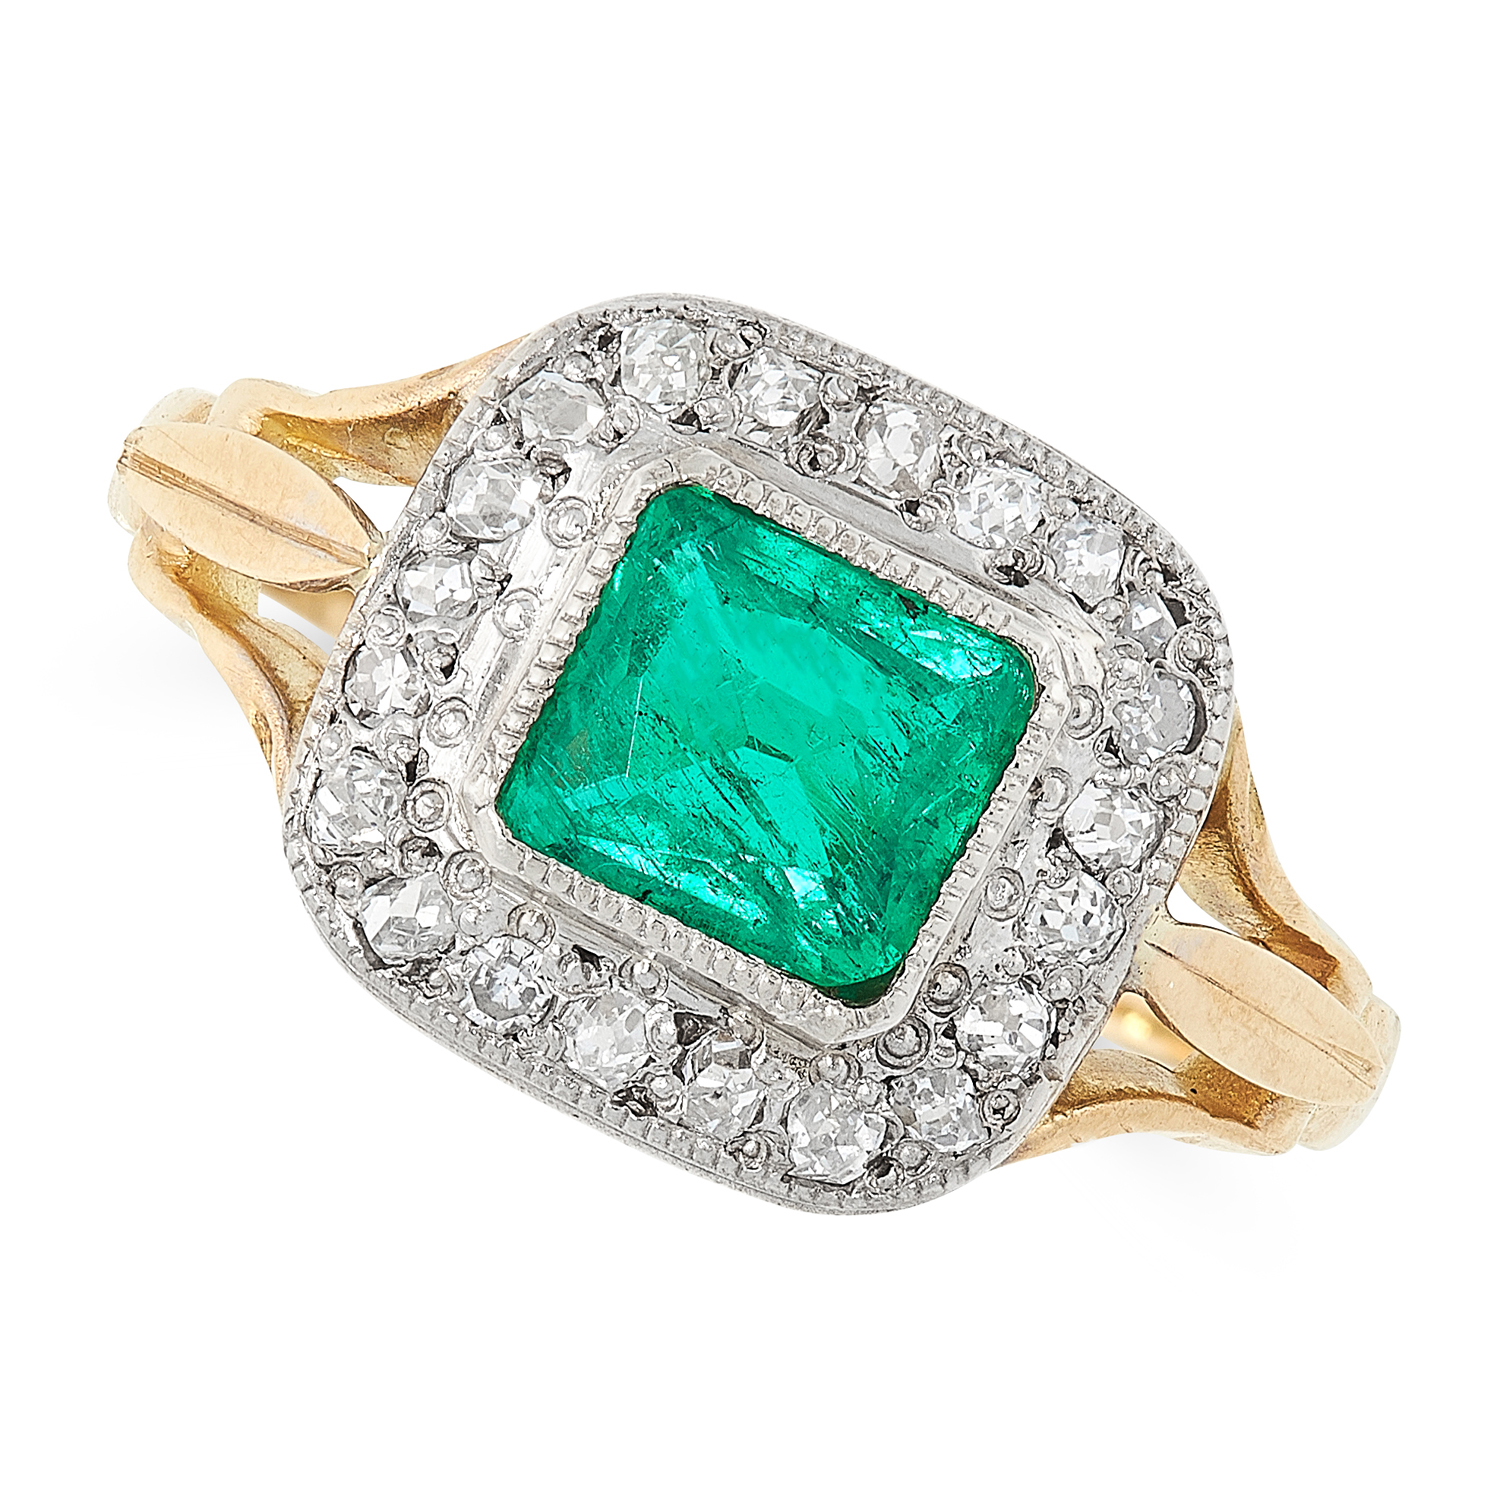 AN EMERALD AND DIAMOND RING in 18ct yellow gold, set with a mixed cut emerald within a border of